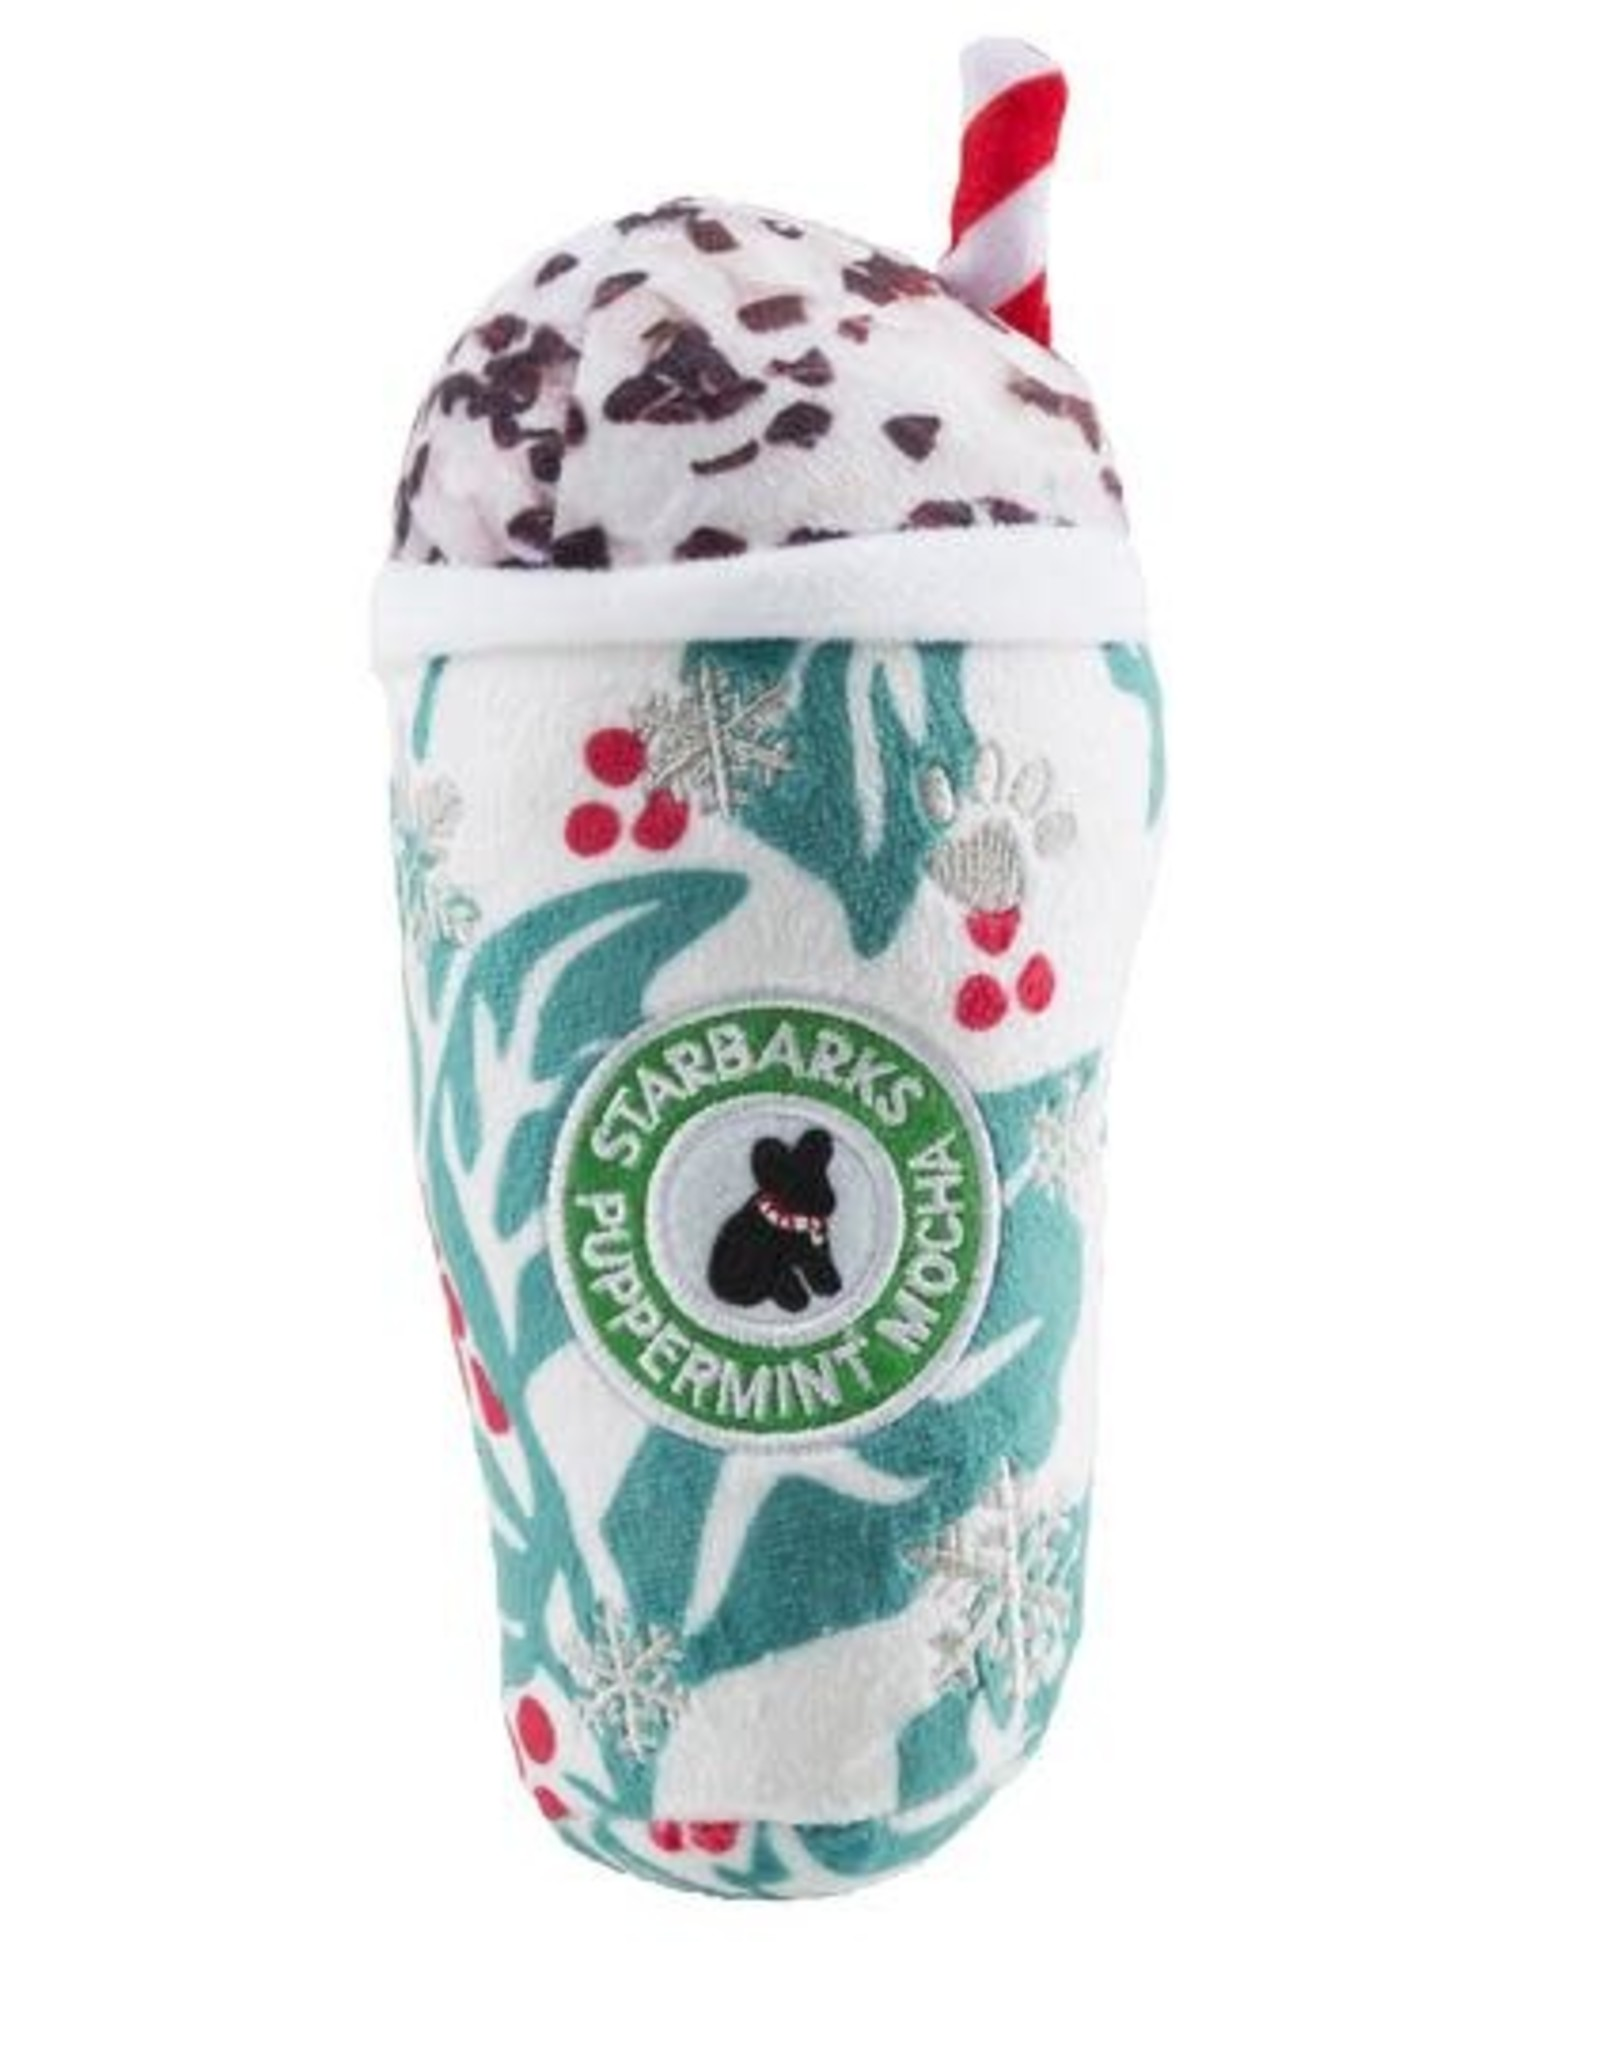 Haute Diggity Dog Starbarks Puppermint Mocha - Holly Print Cup